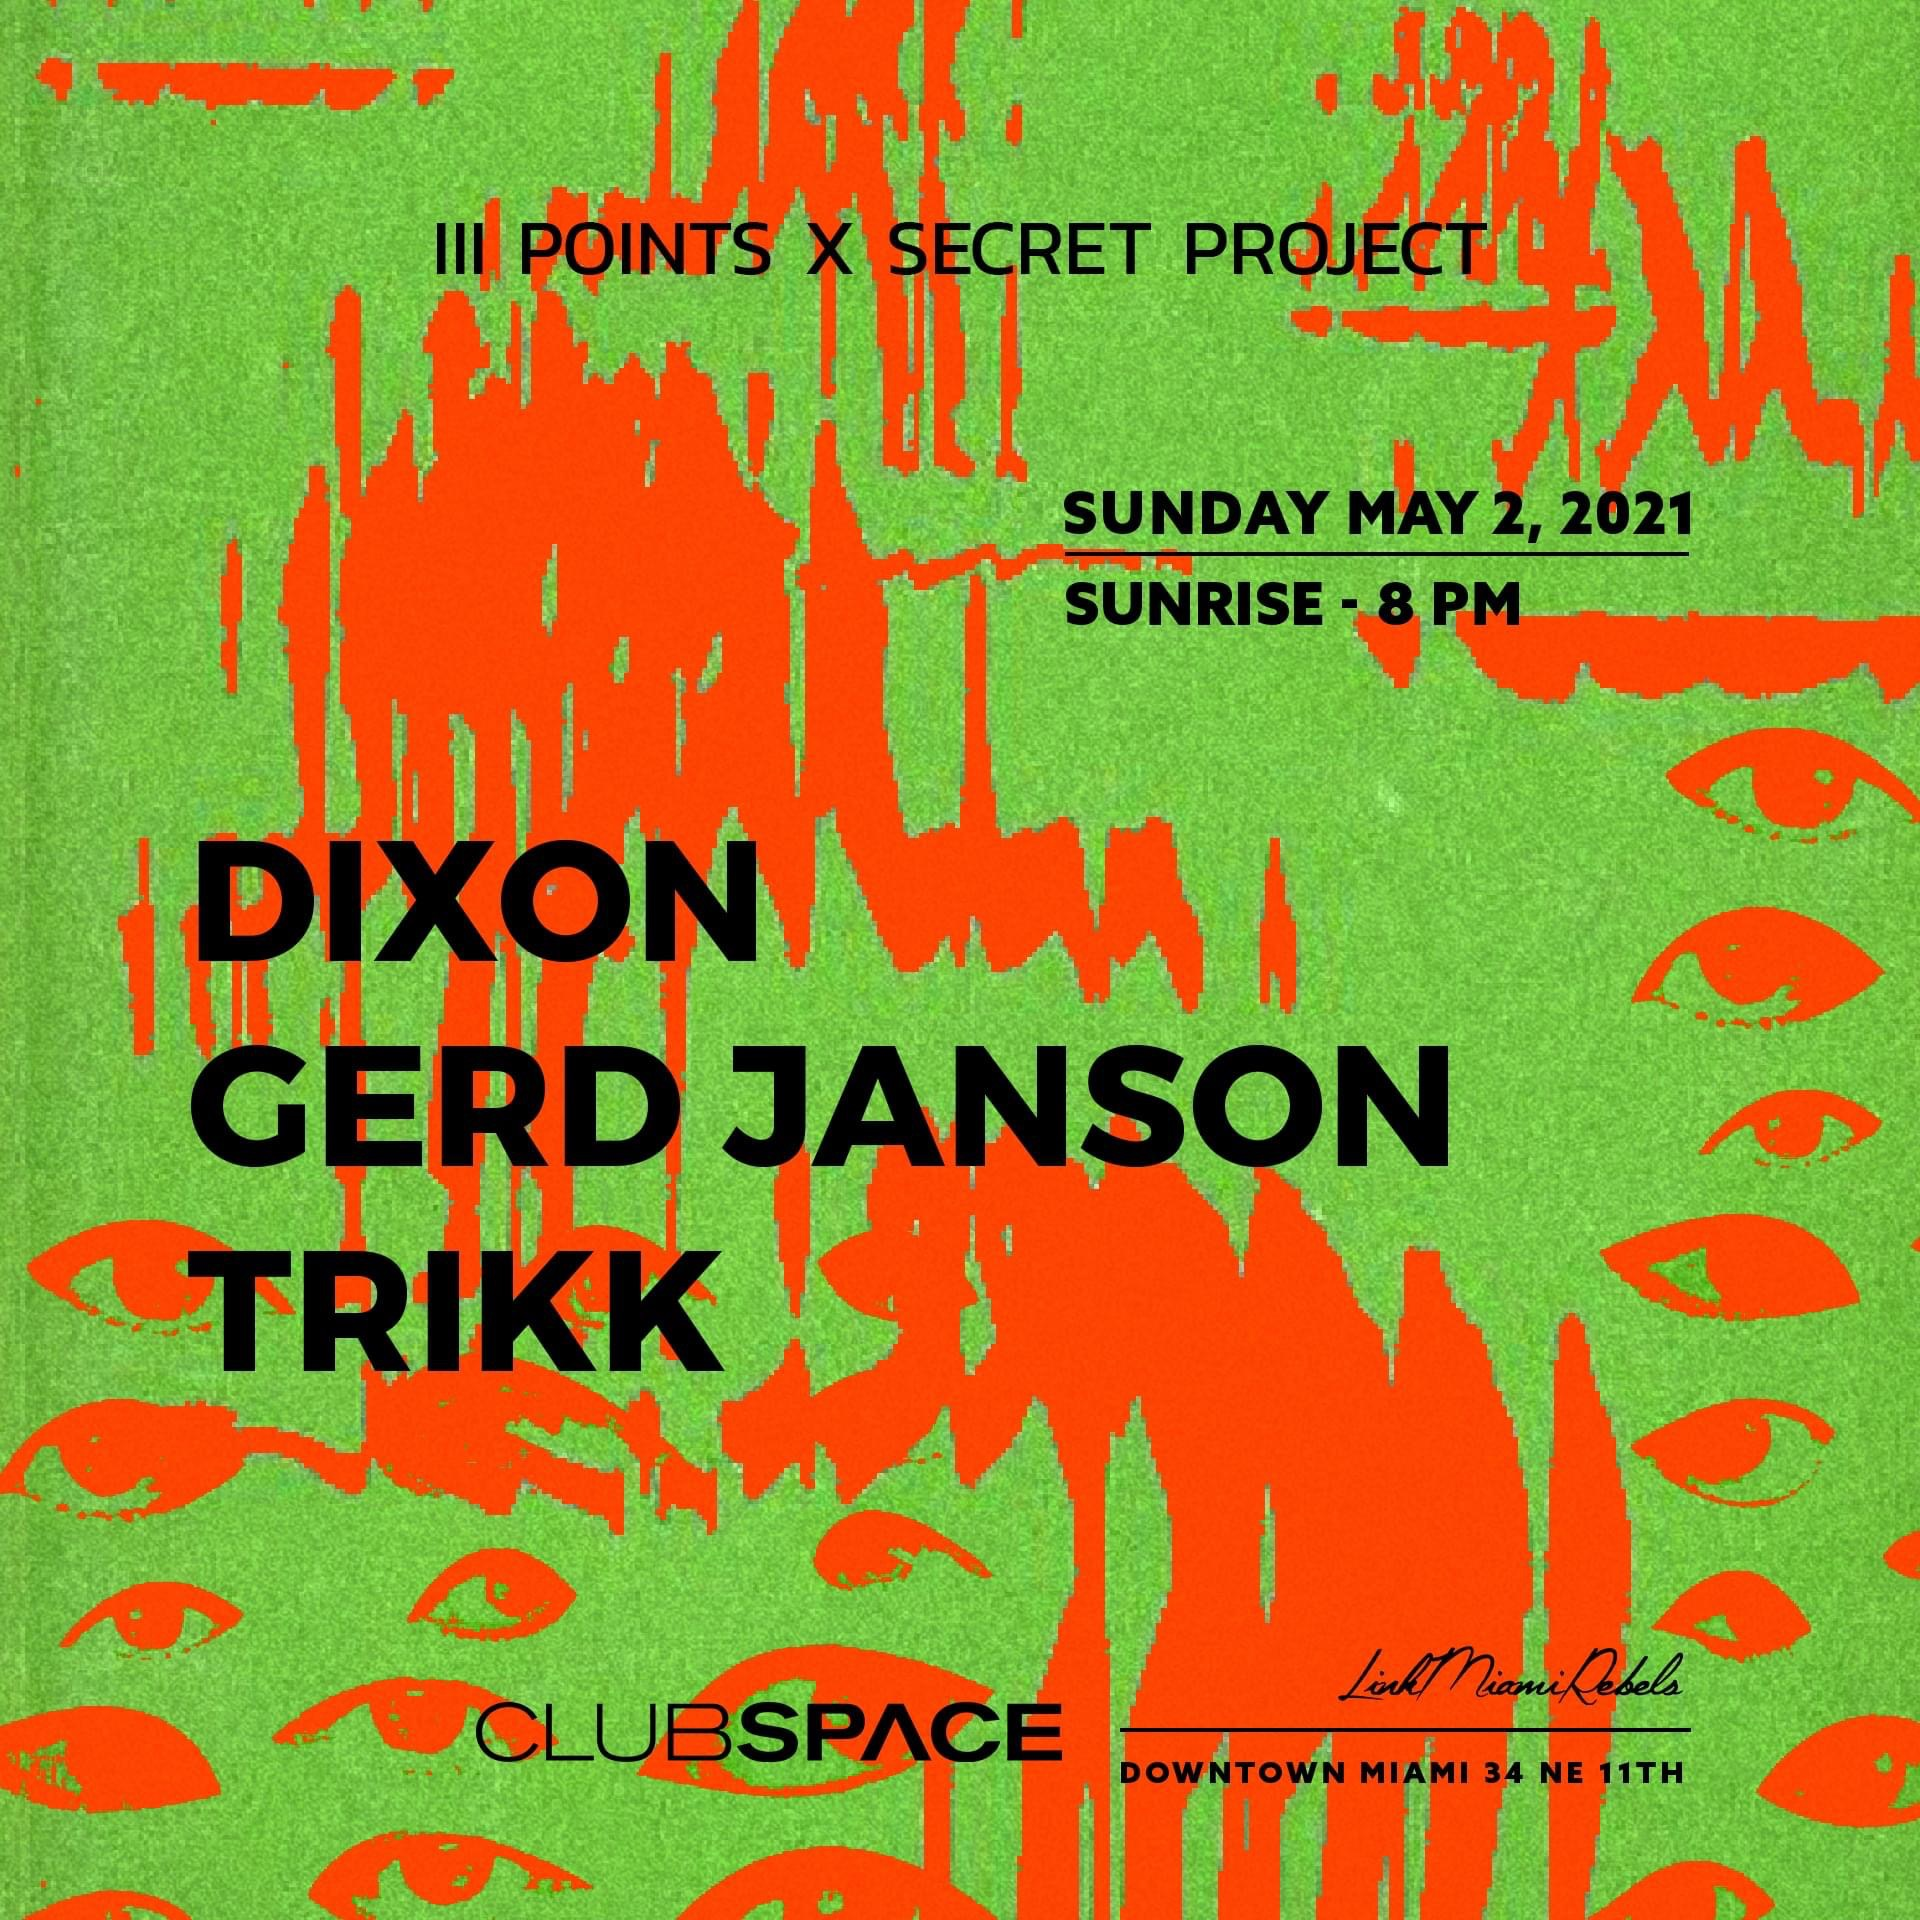 III Points x Secret Project Club Space Afterparty